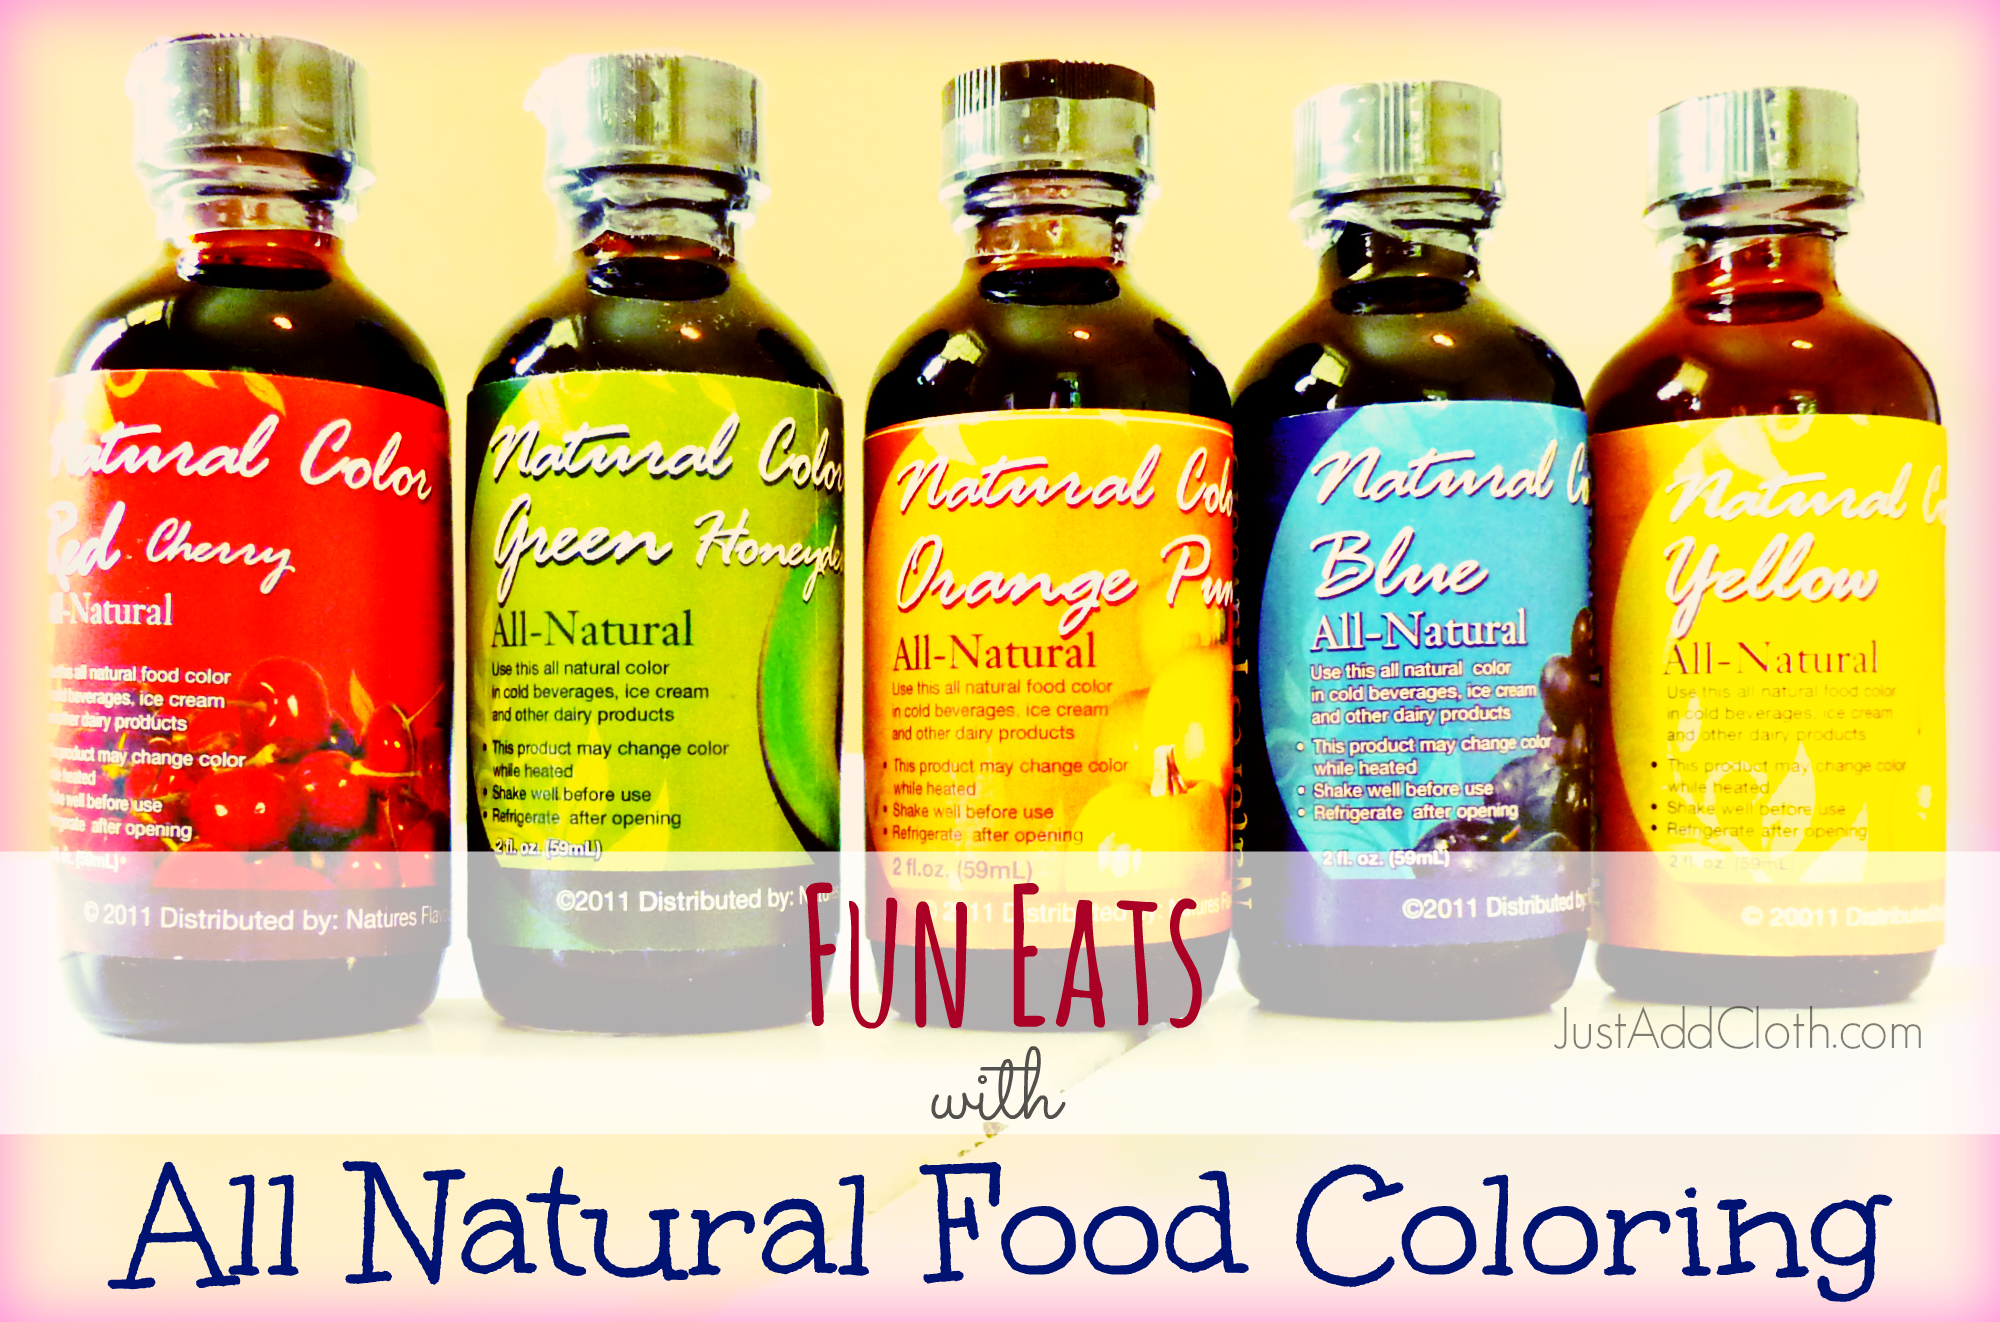 Making Food Fun with All Natural Food Coloring • Just Add Cloth